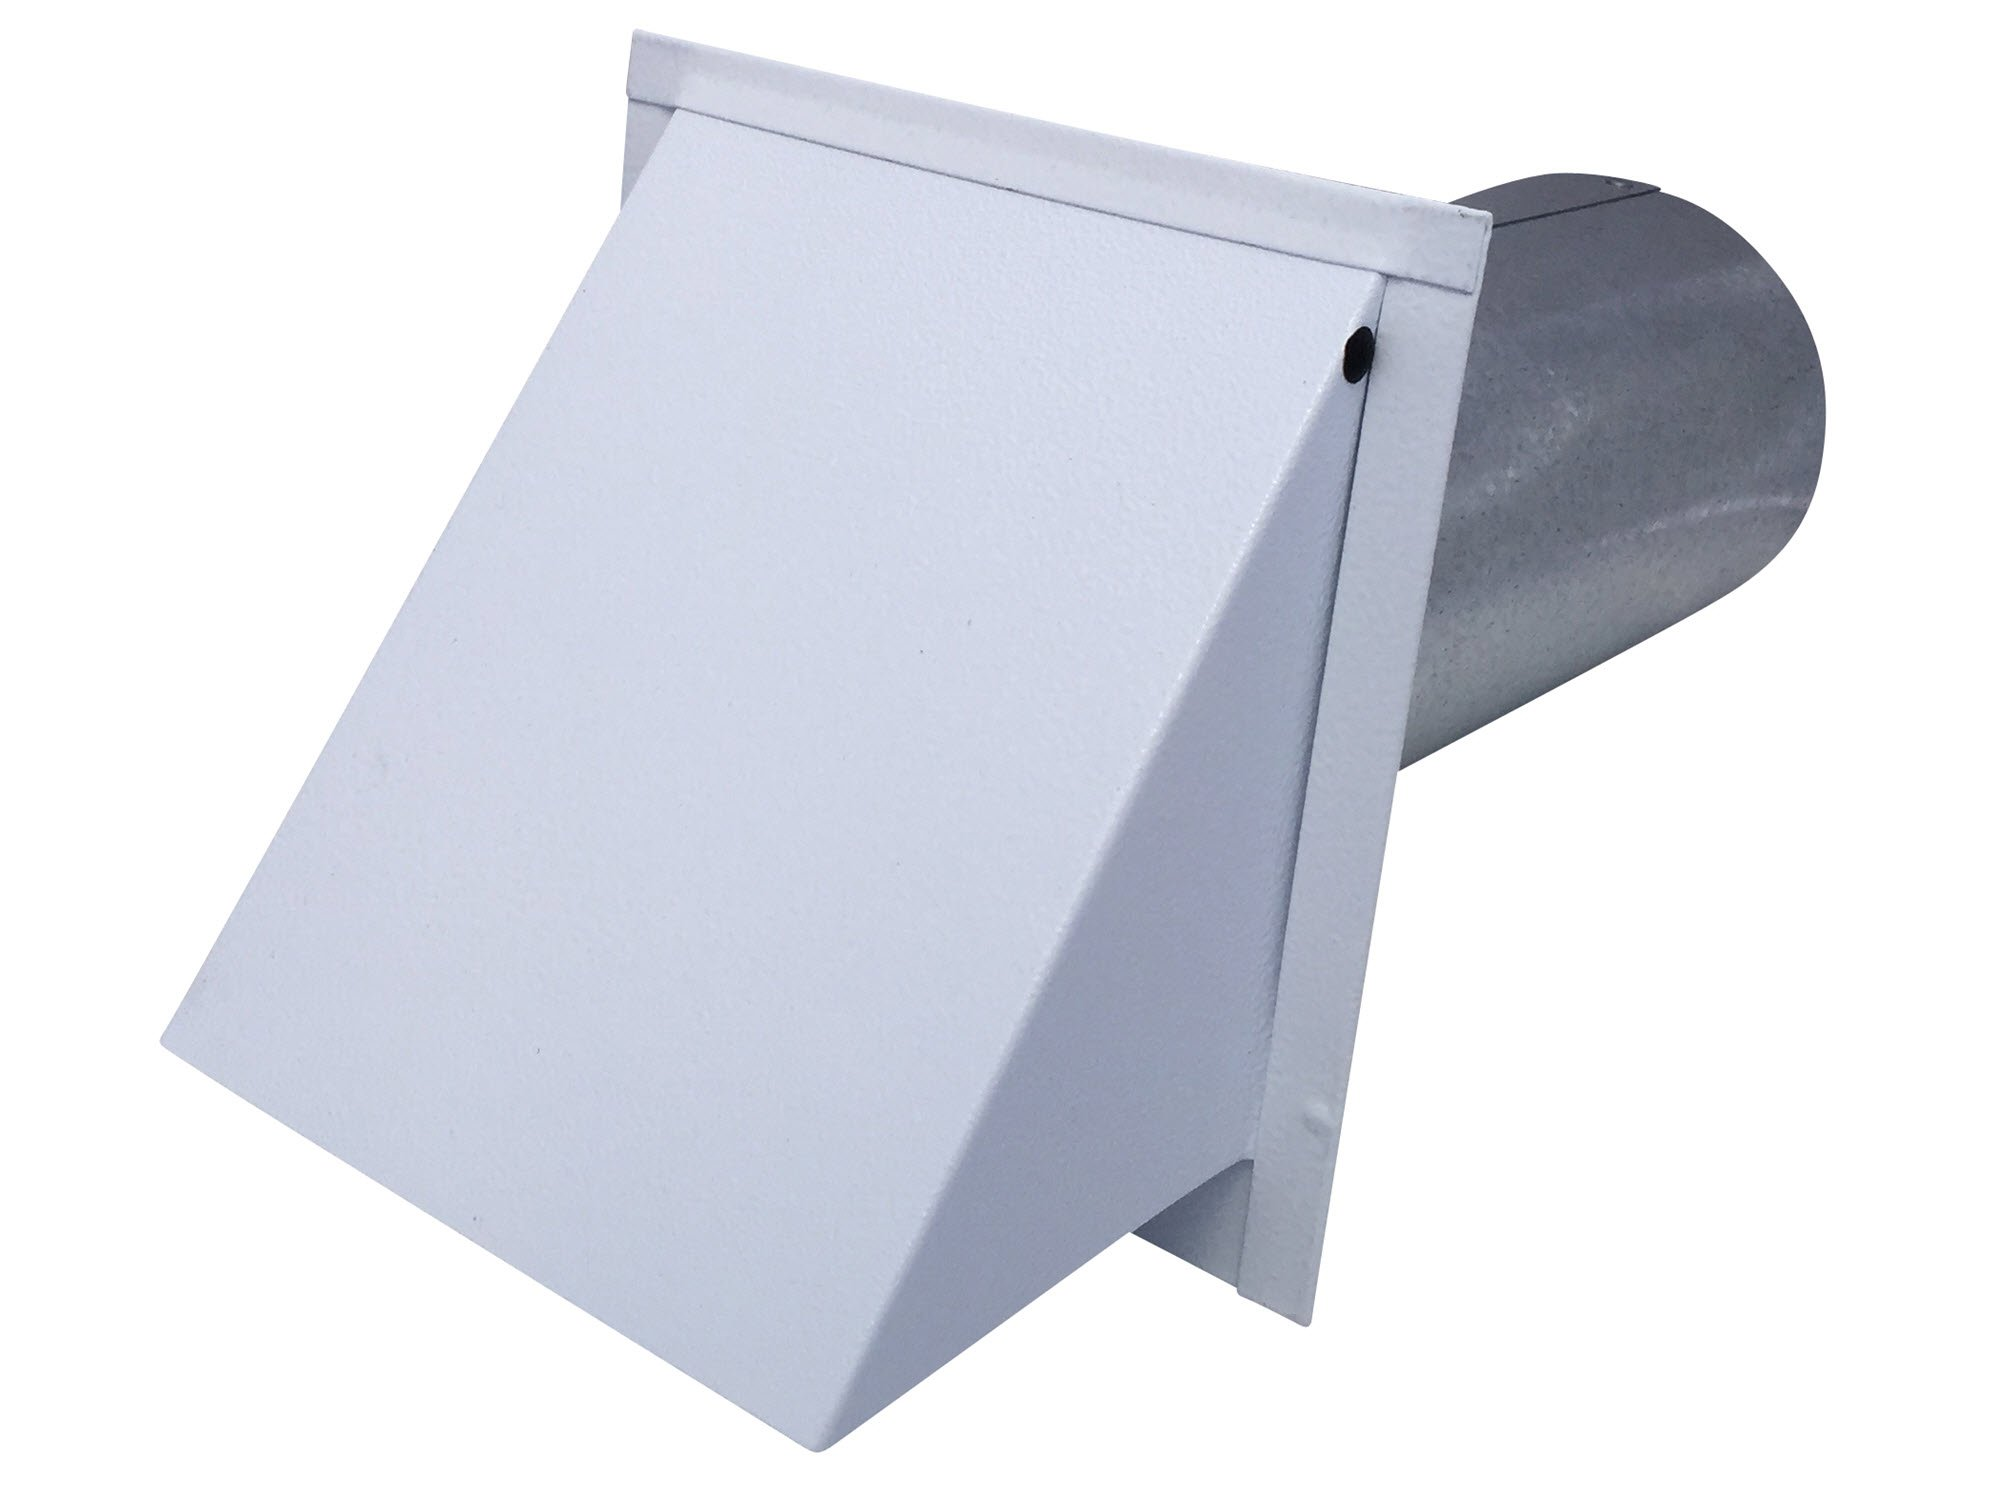 4 Inch Wall Vent Painted White Damper & Screen (4 Inch diameter) - Vent Works